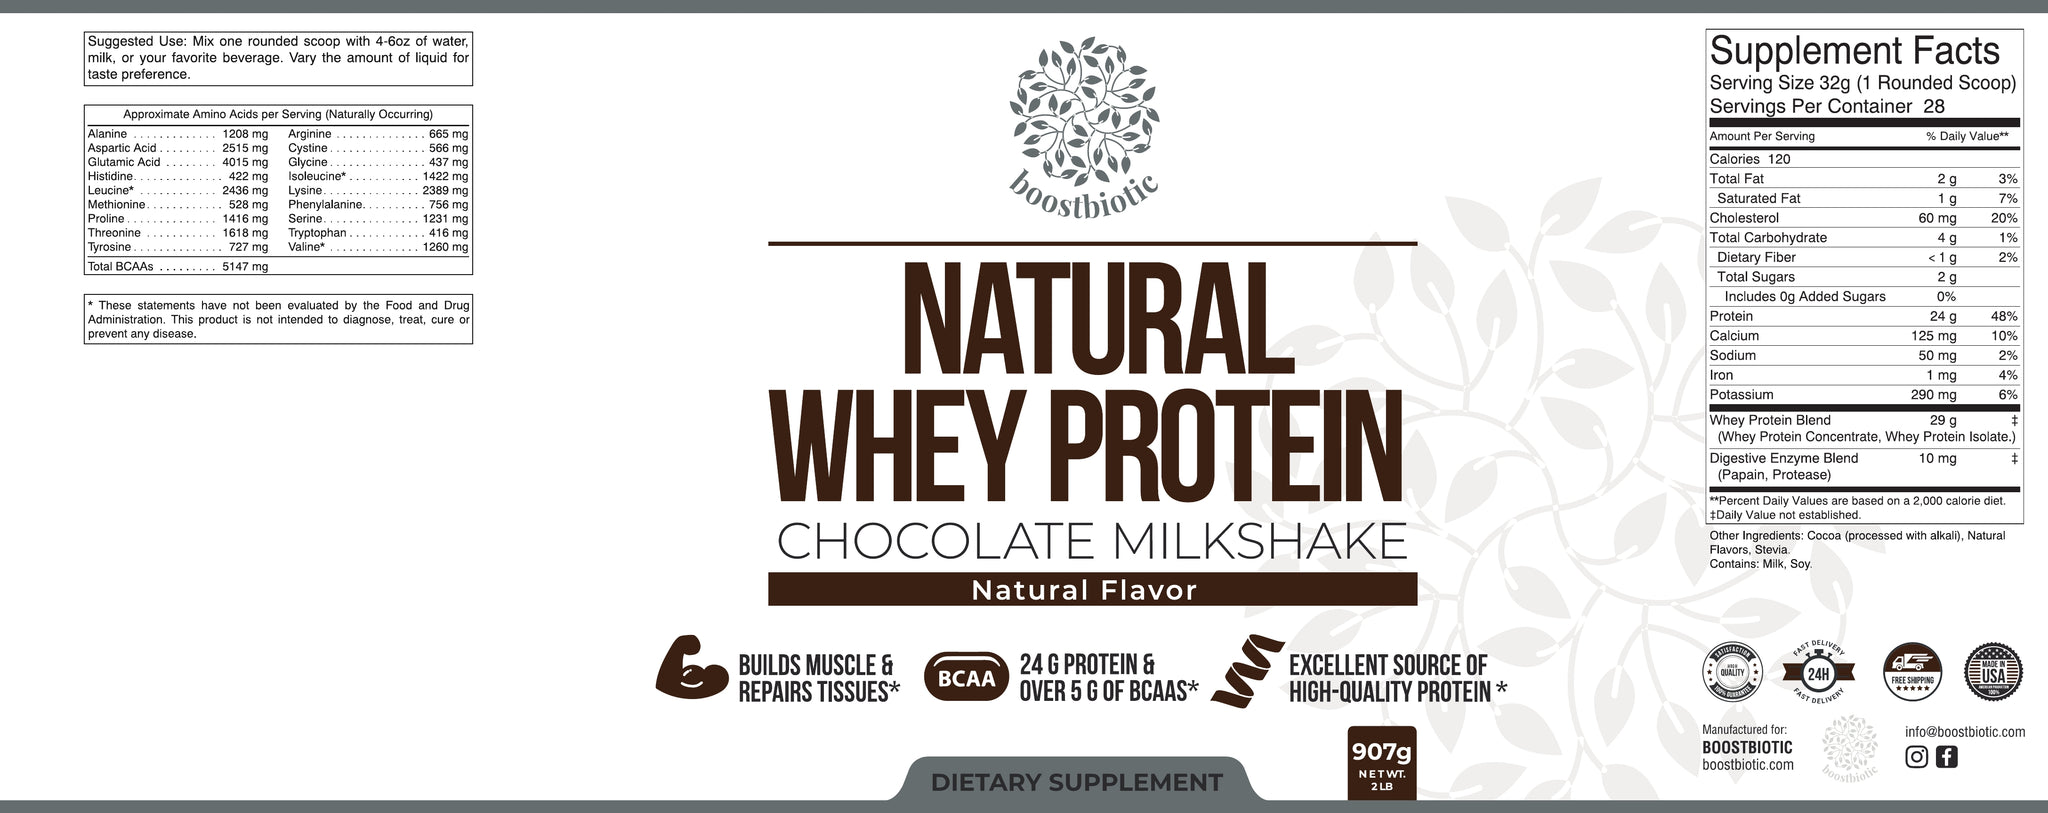 Chocolate Whey Protein Label Boost Biotic